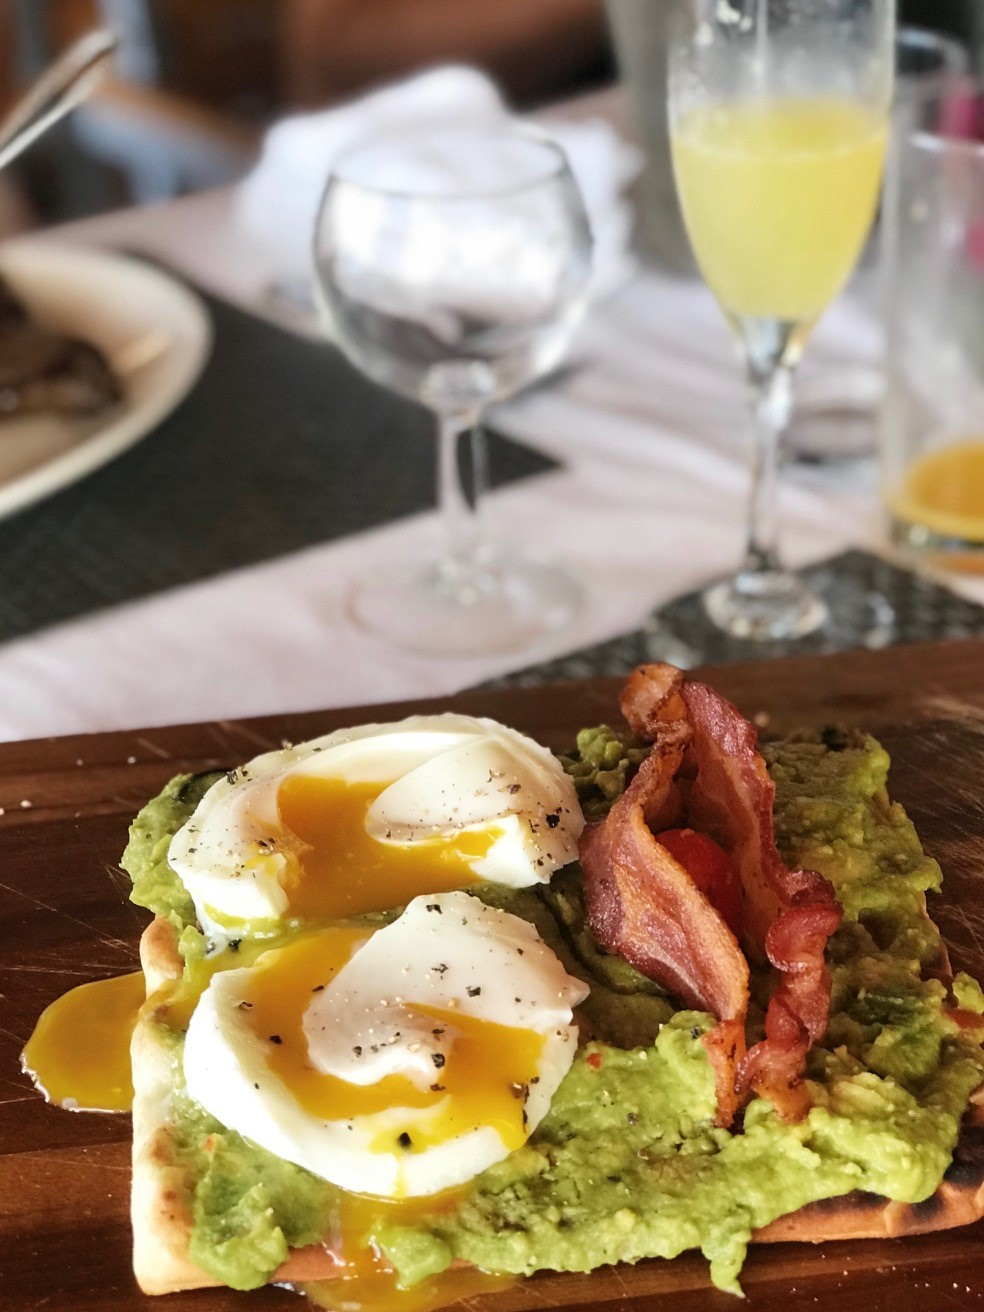 Sunday Brunch at Sugar Mill BVI - Avocado toast with poached eggs and bacon